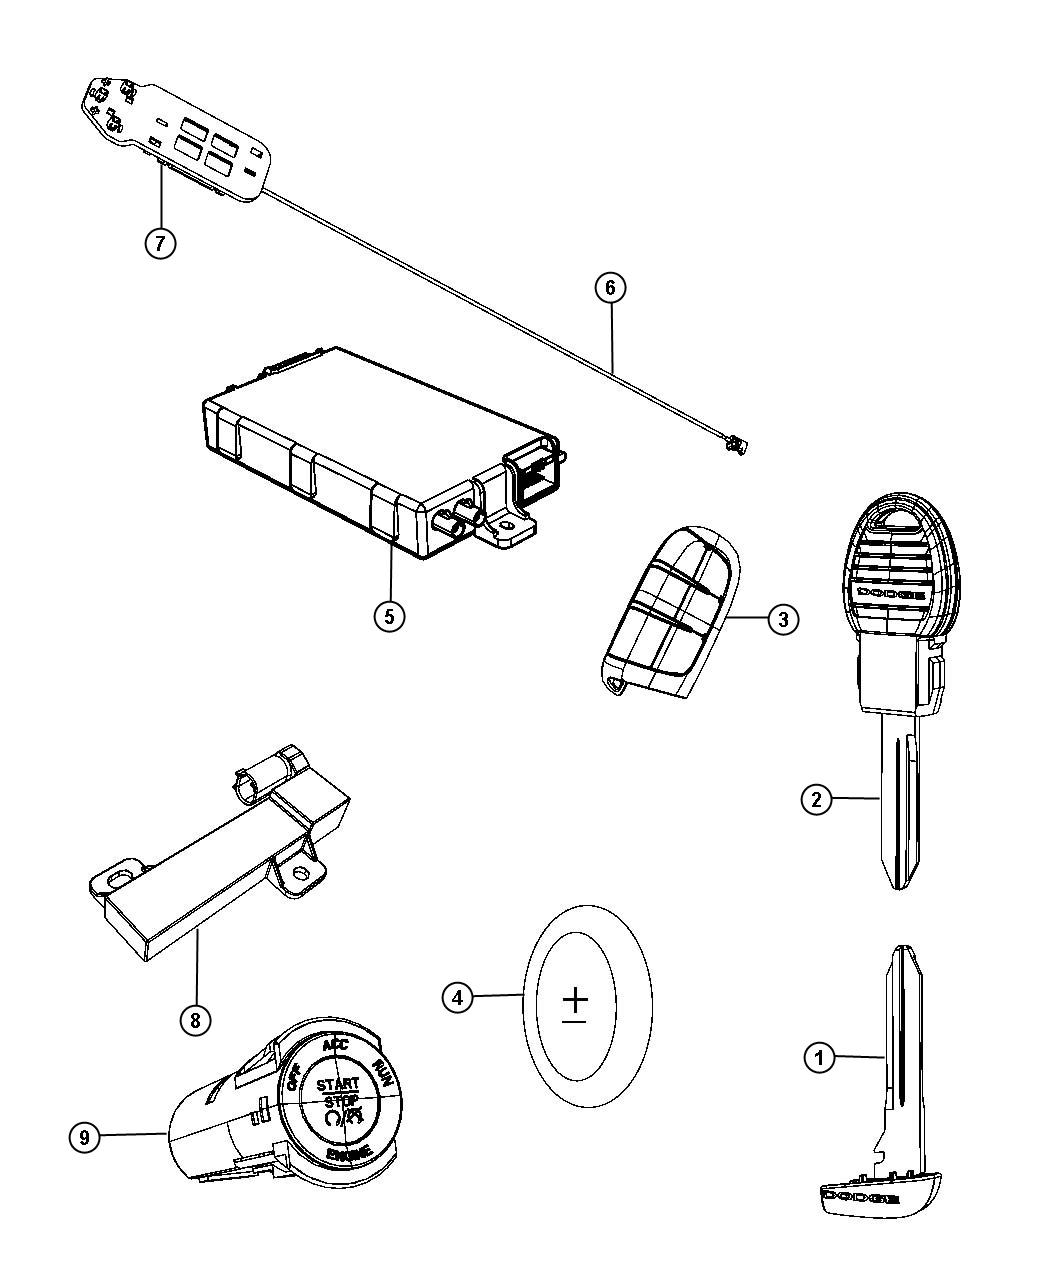 Dodge Journey Antenna Used For Remote Start And Keyless